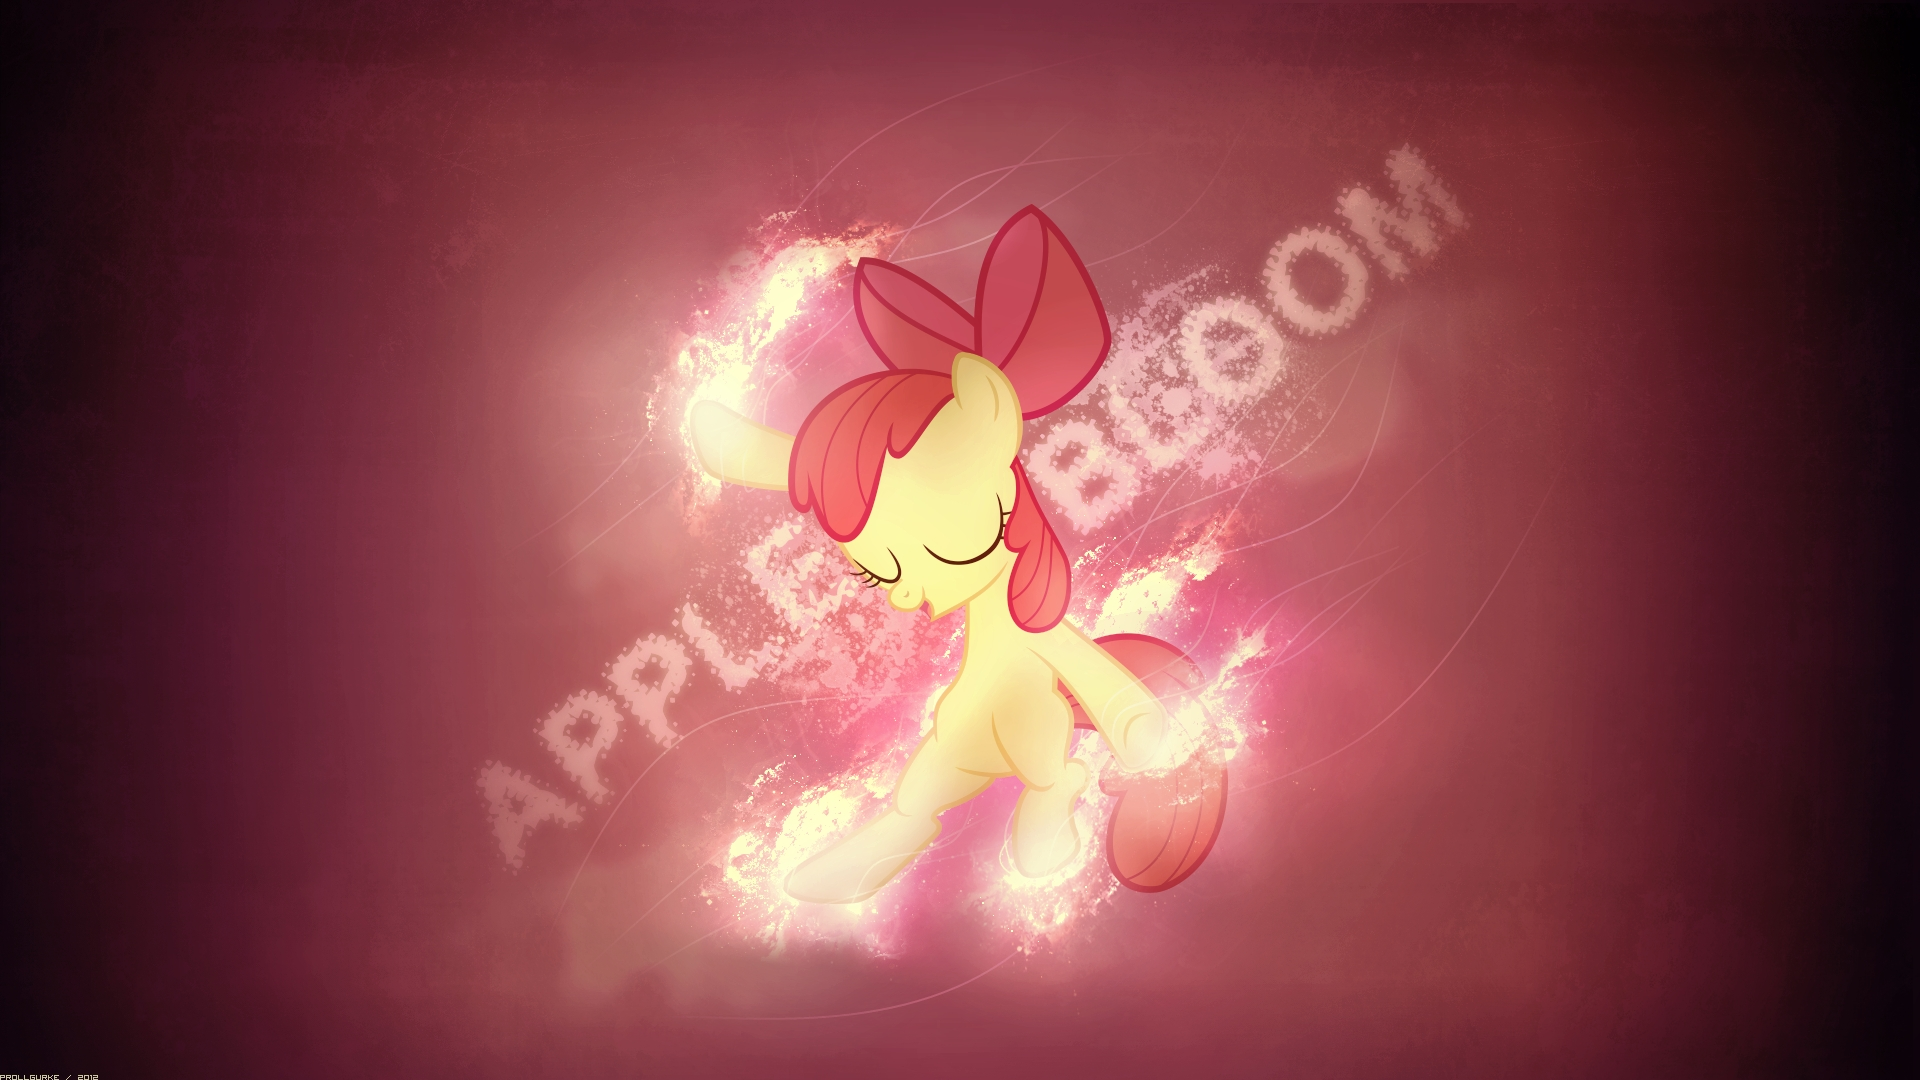 Applebloom dancing (Wallpaper) by Prollgurke